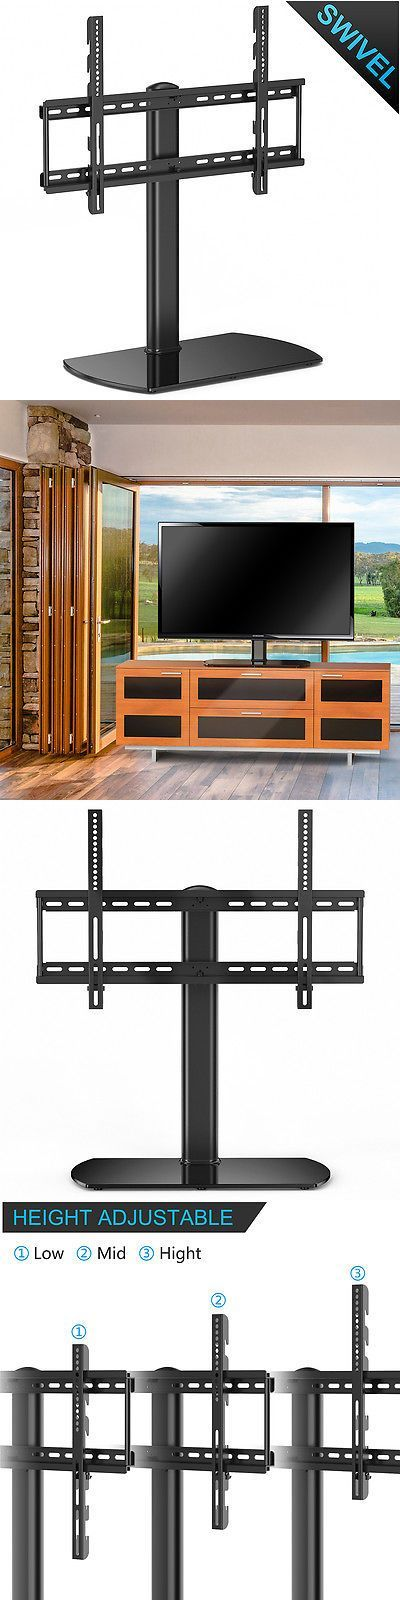 TV Mounts and Brackets: Universal Tv Stand With Swivel Mount Pedestal Base For 32-60 Sony Samsung Tcl -> BUY IT NOW ONLY: $53.94 on eBay!